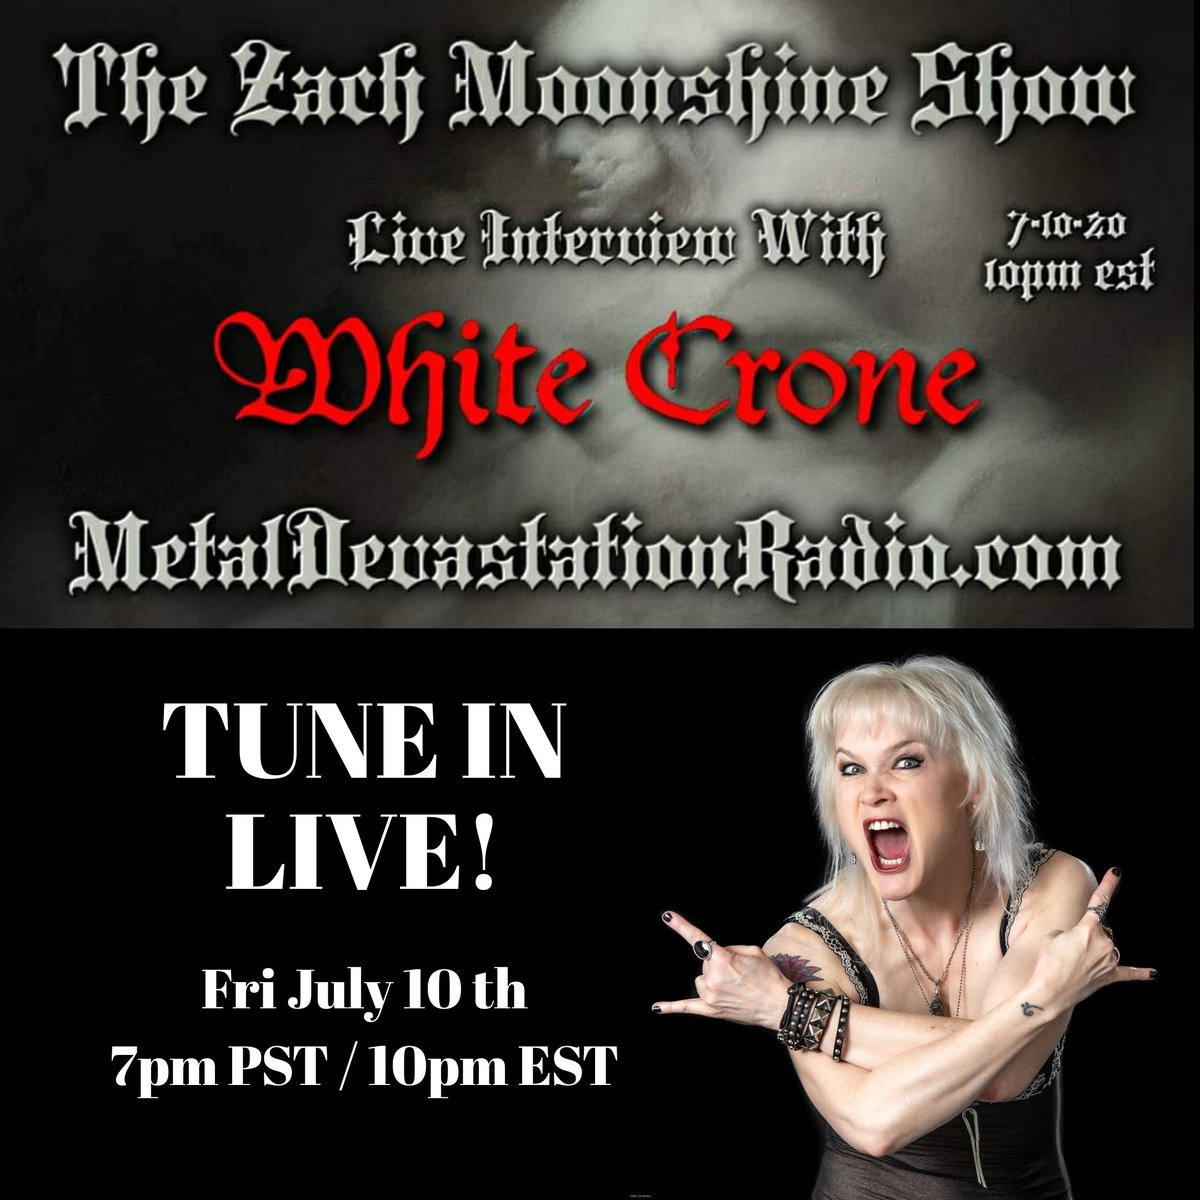 Looking forward to chatting with Zach Moonshine tonight! 7pm Pacific/ 10pm Eastern @MDR666ZM #metal #heavymetal #bassplayer #femalefrontedmetal #metaldevastationradio #nwothm #traditionalmetal #notdungeonsynthpic.twitter.com/4cIvAiK2yM